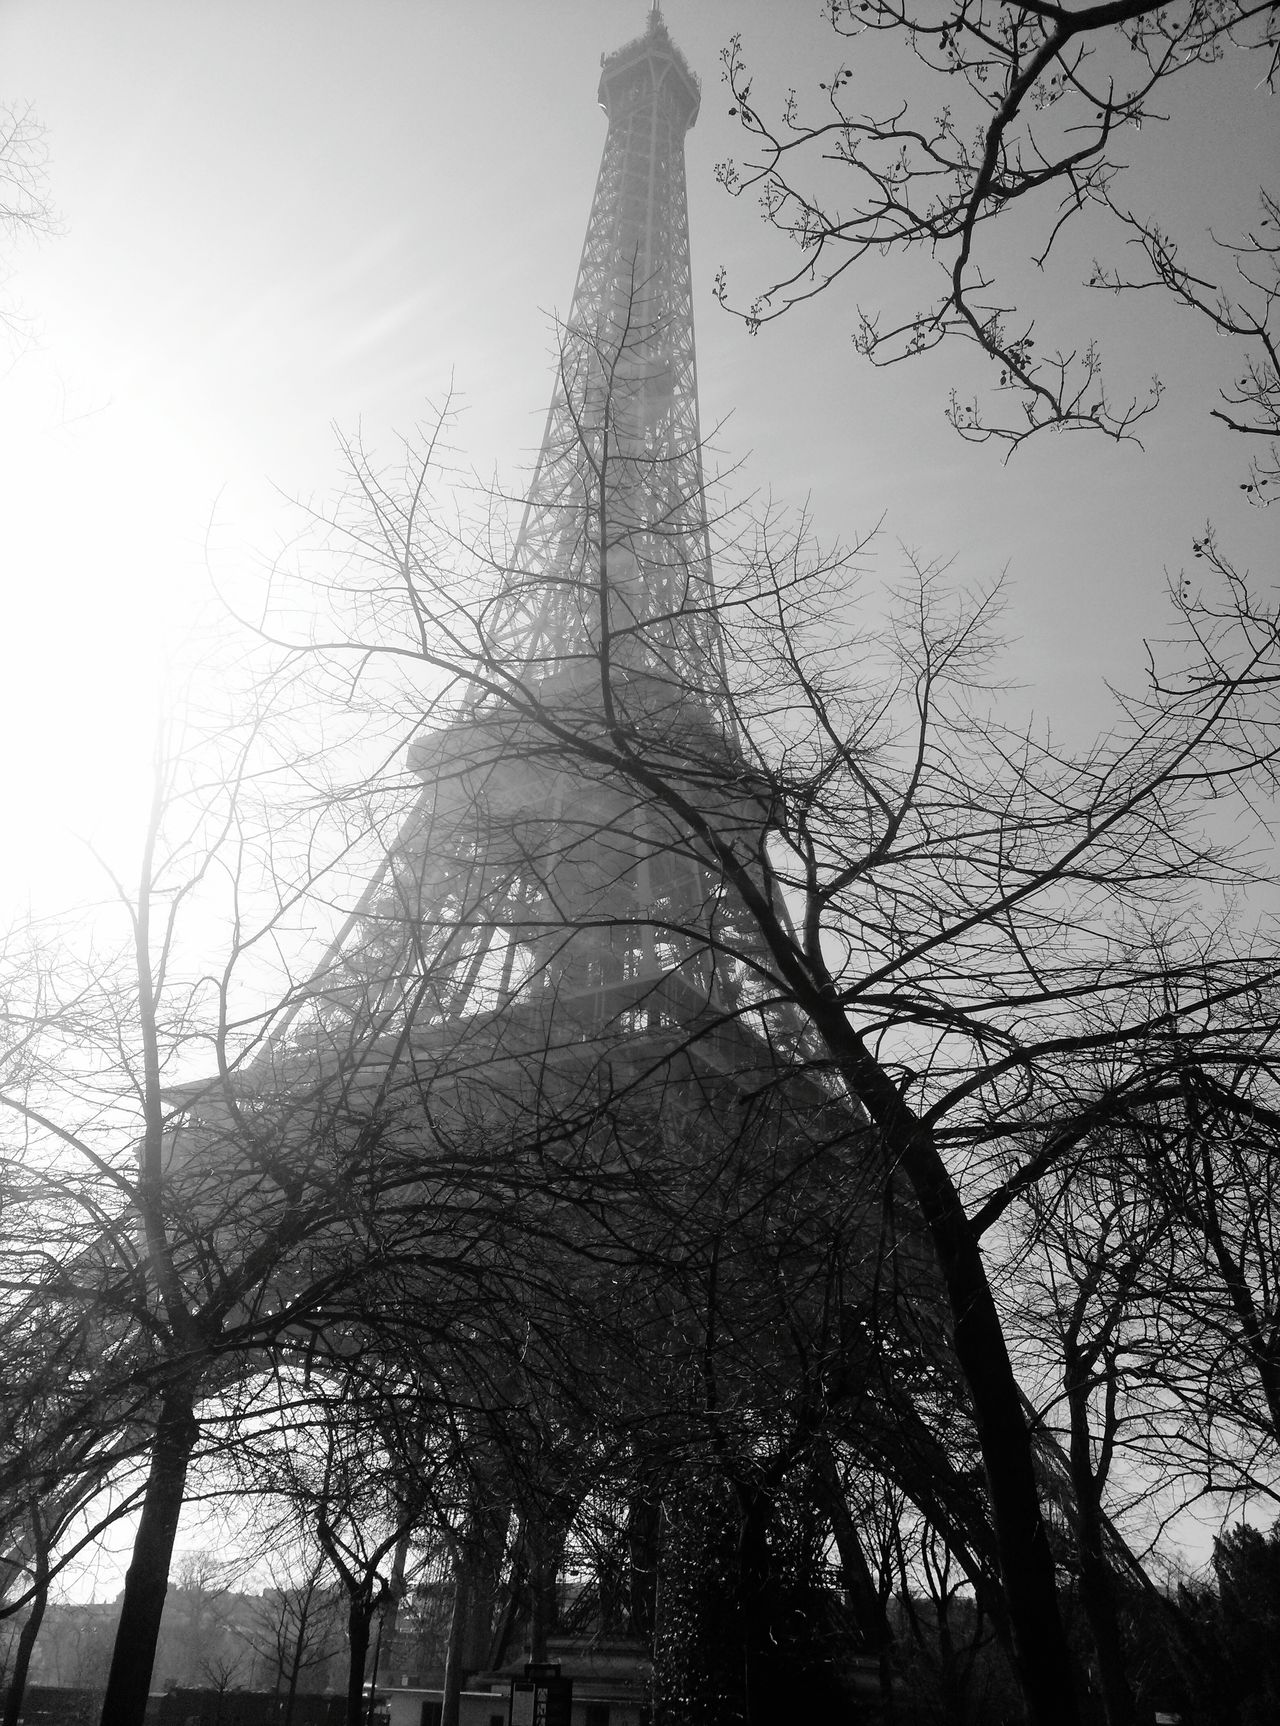 Tourist Attraction  Tourism Travel Photography Travel Historical Building Building Exterior Architecture Art Built Structure Tree Outdoors Cloud - Sky Travel Destinations Low Angle View Paris Eiffel Tower Branch France Day Sky Low Angle View Tree Black & White Black And White